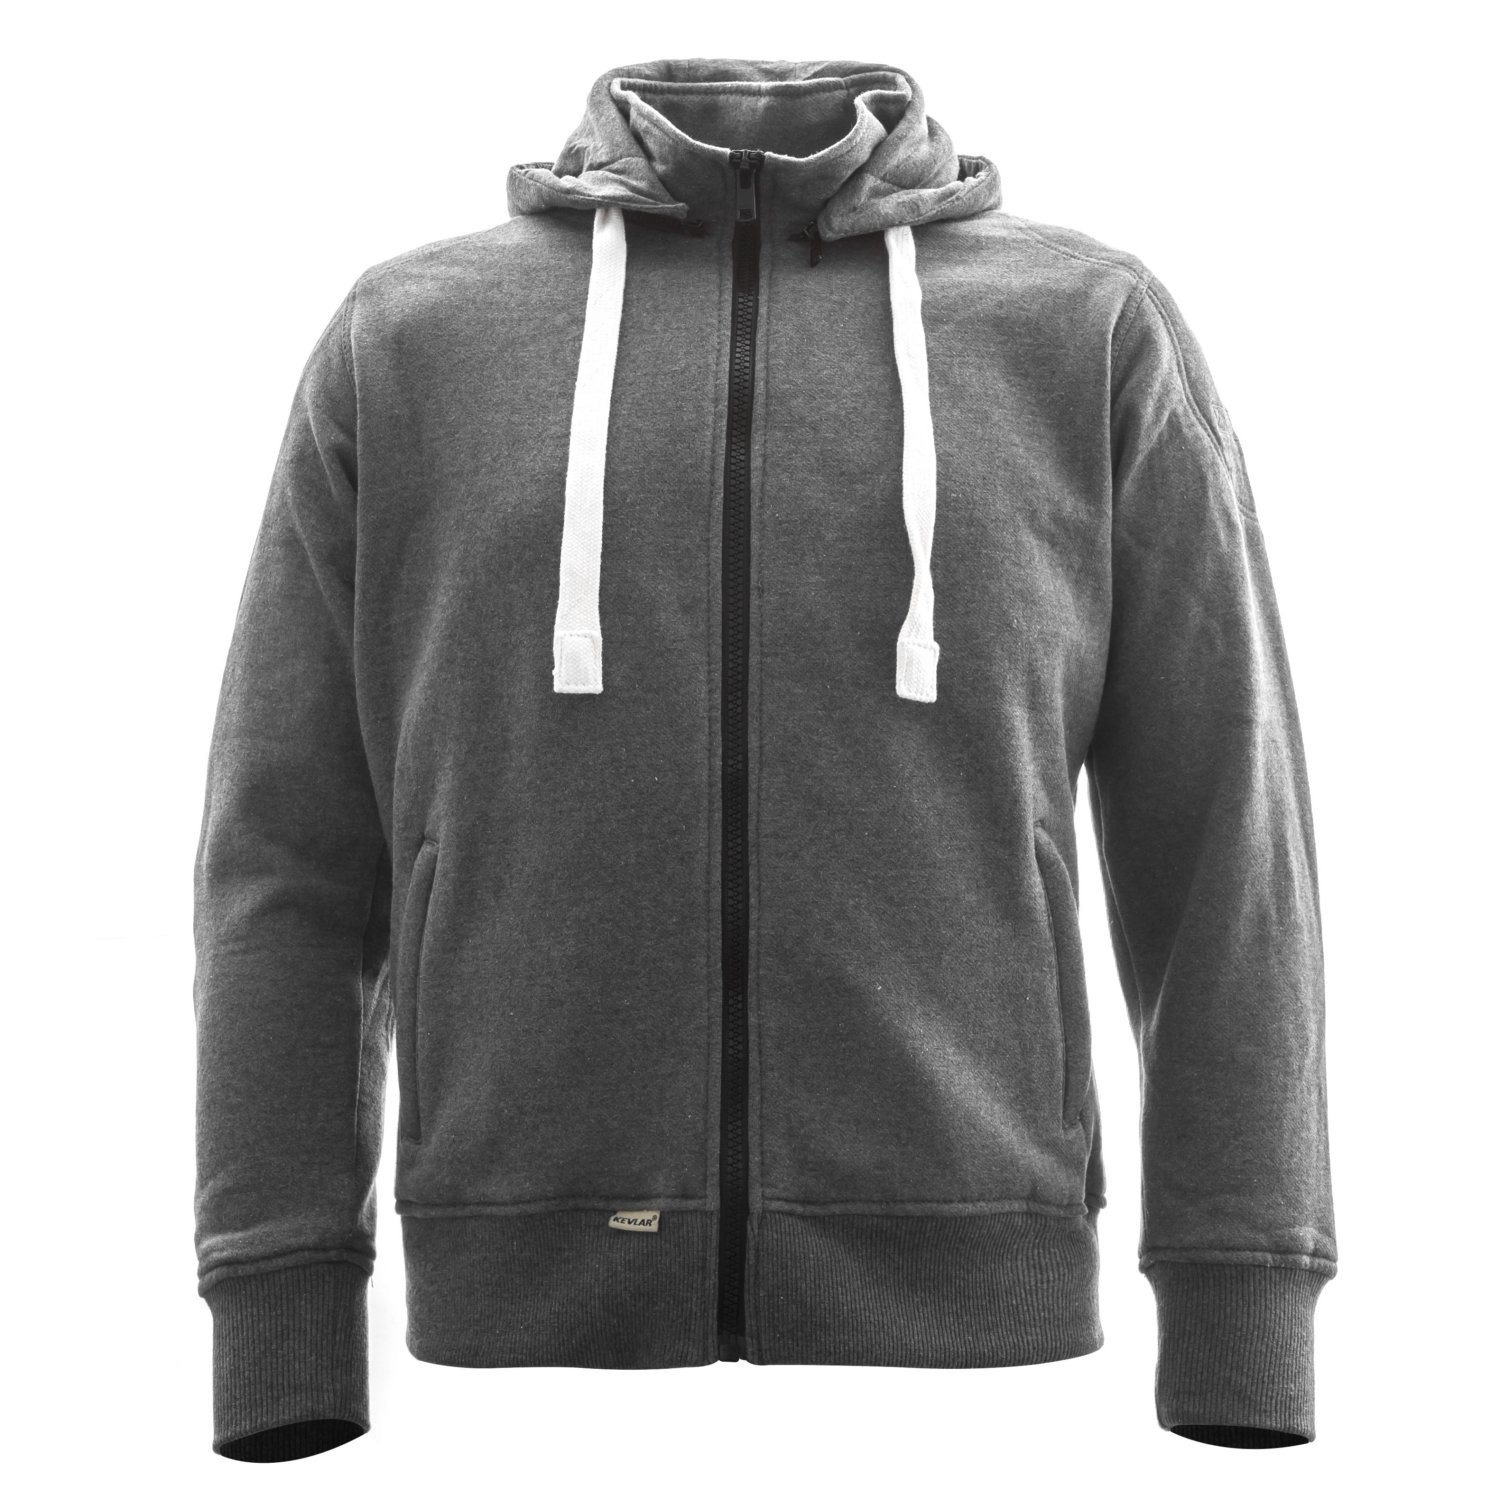 Booster Hoodie, Core - Reinforced Men, Women Small